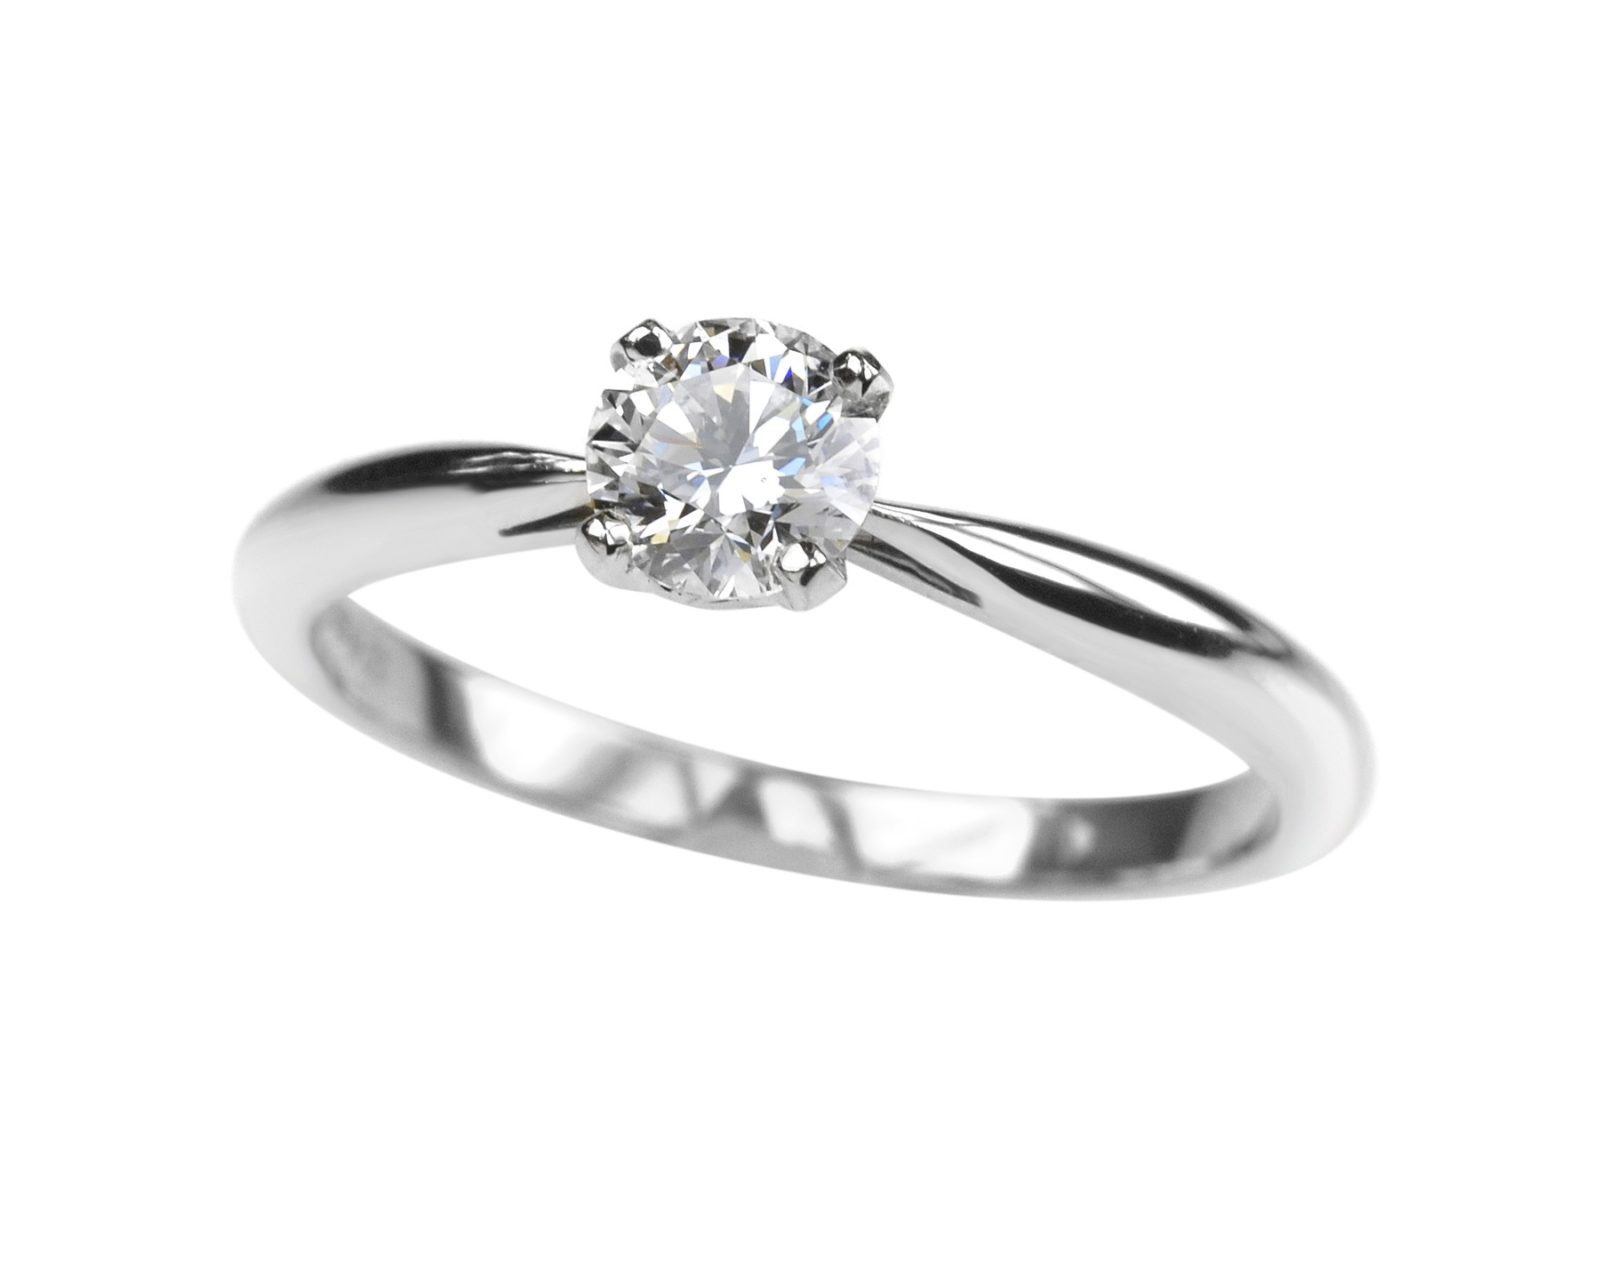 Engagement ring ideas socially fabulous fabulously social for Diamond wedding ring images